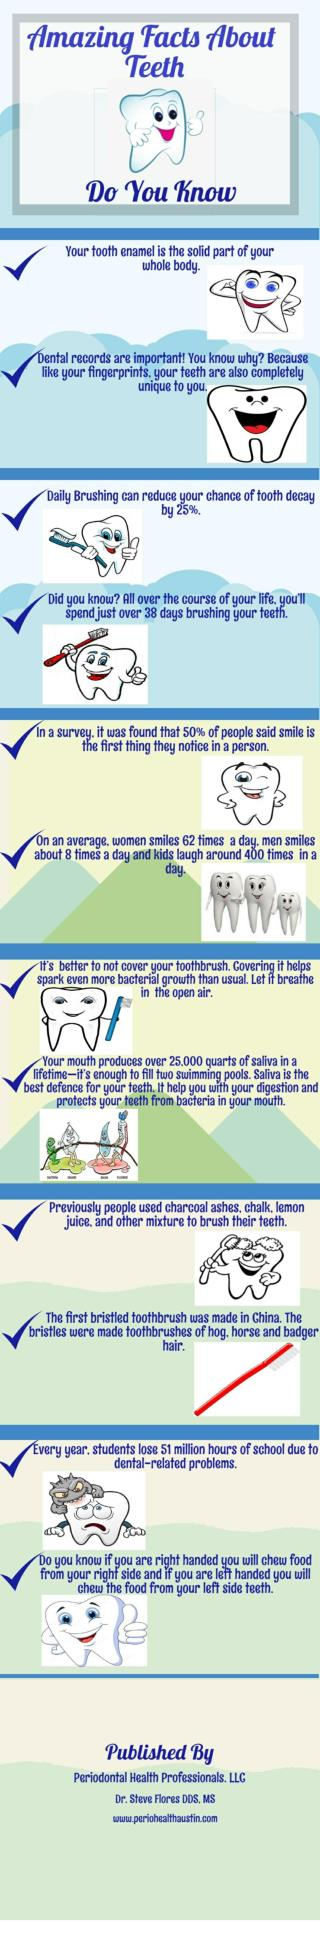 Amazing facts about Teeth